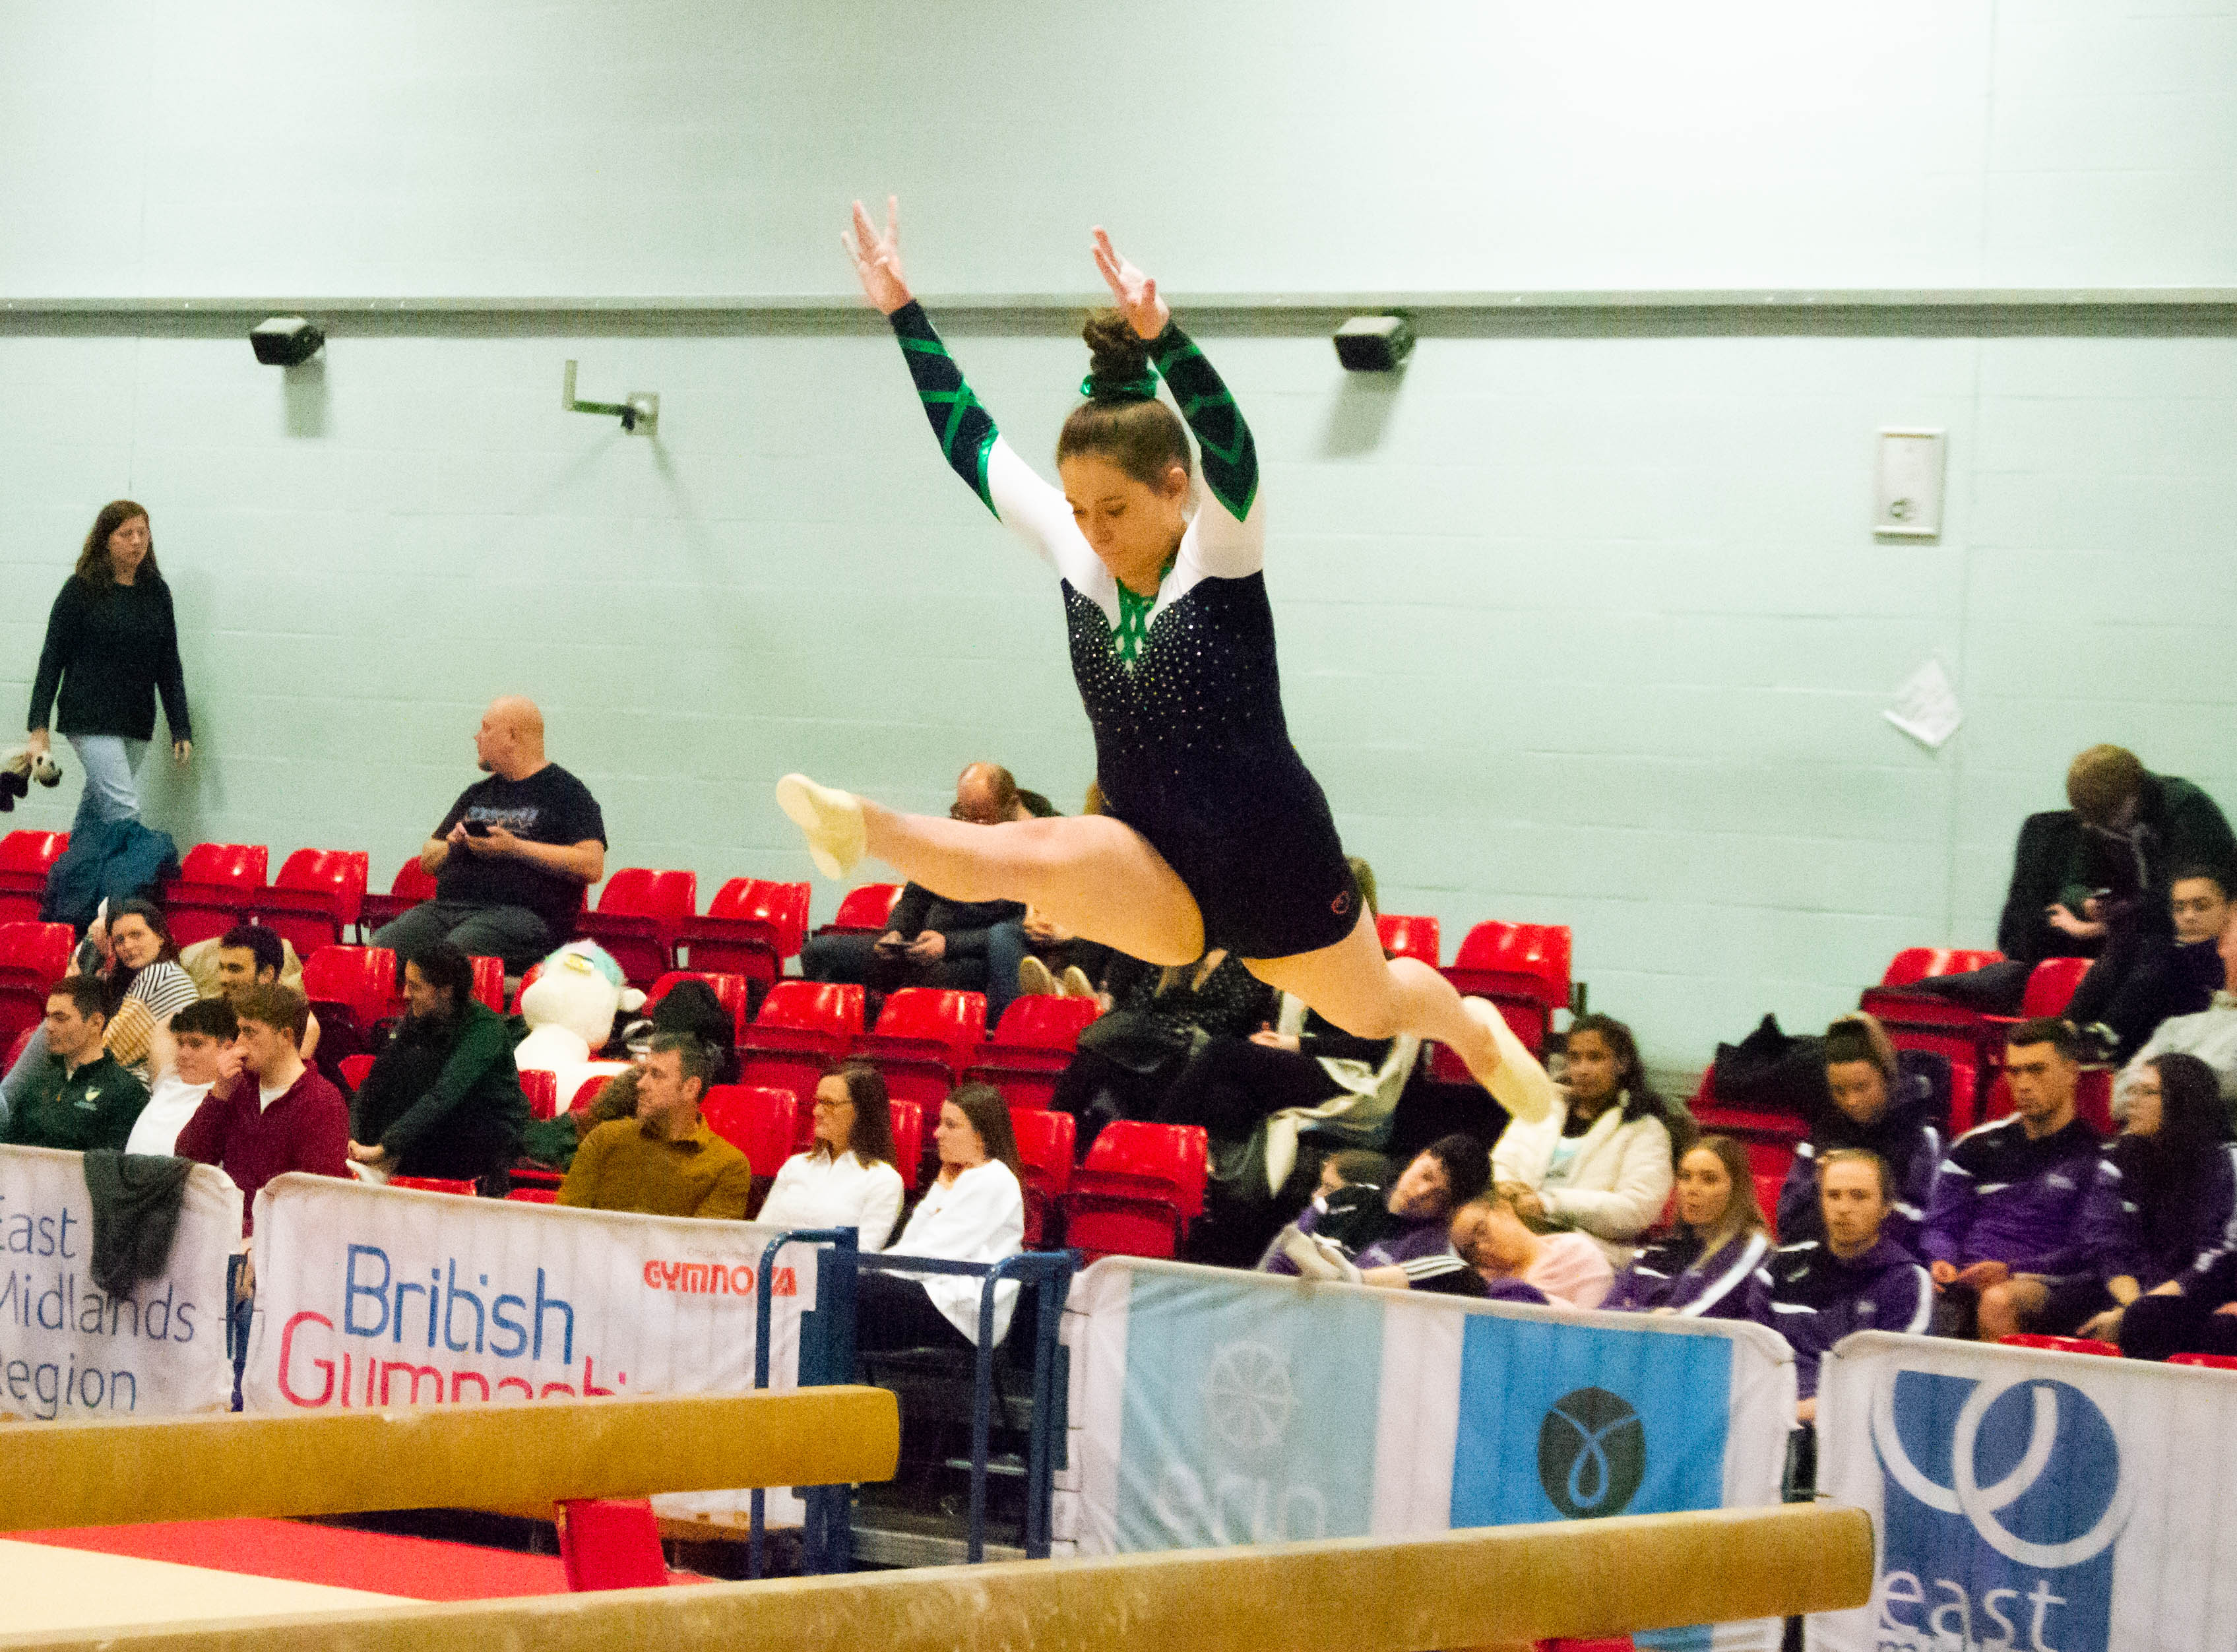 Gymnast performing a split leap on beam